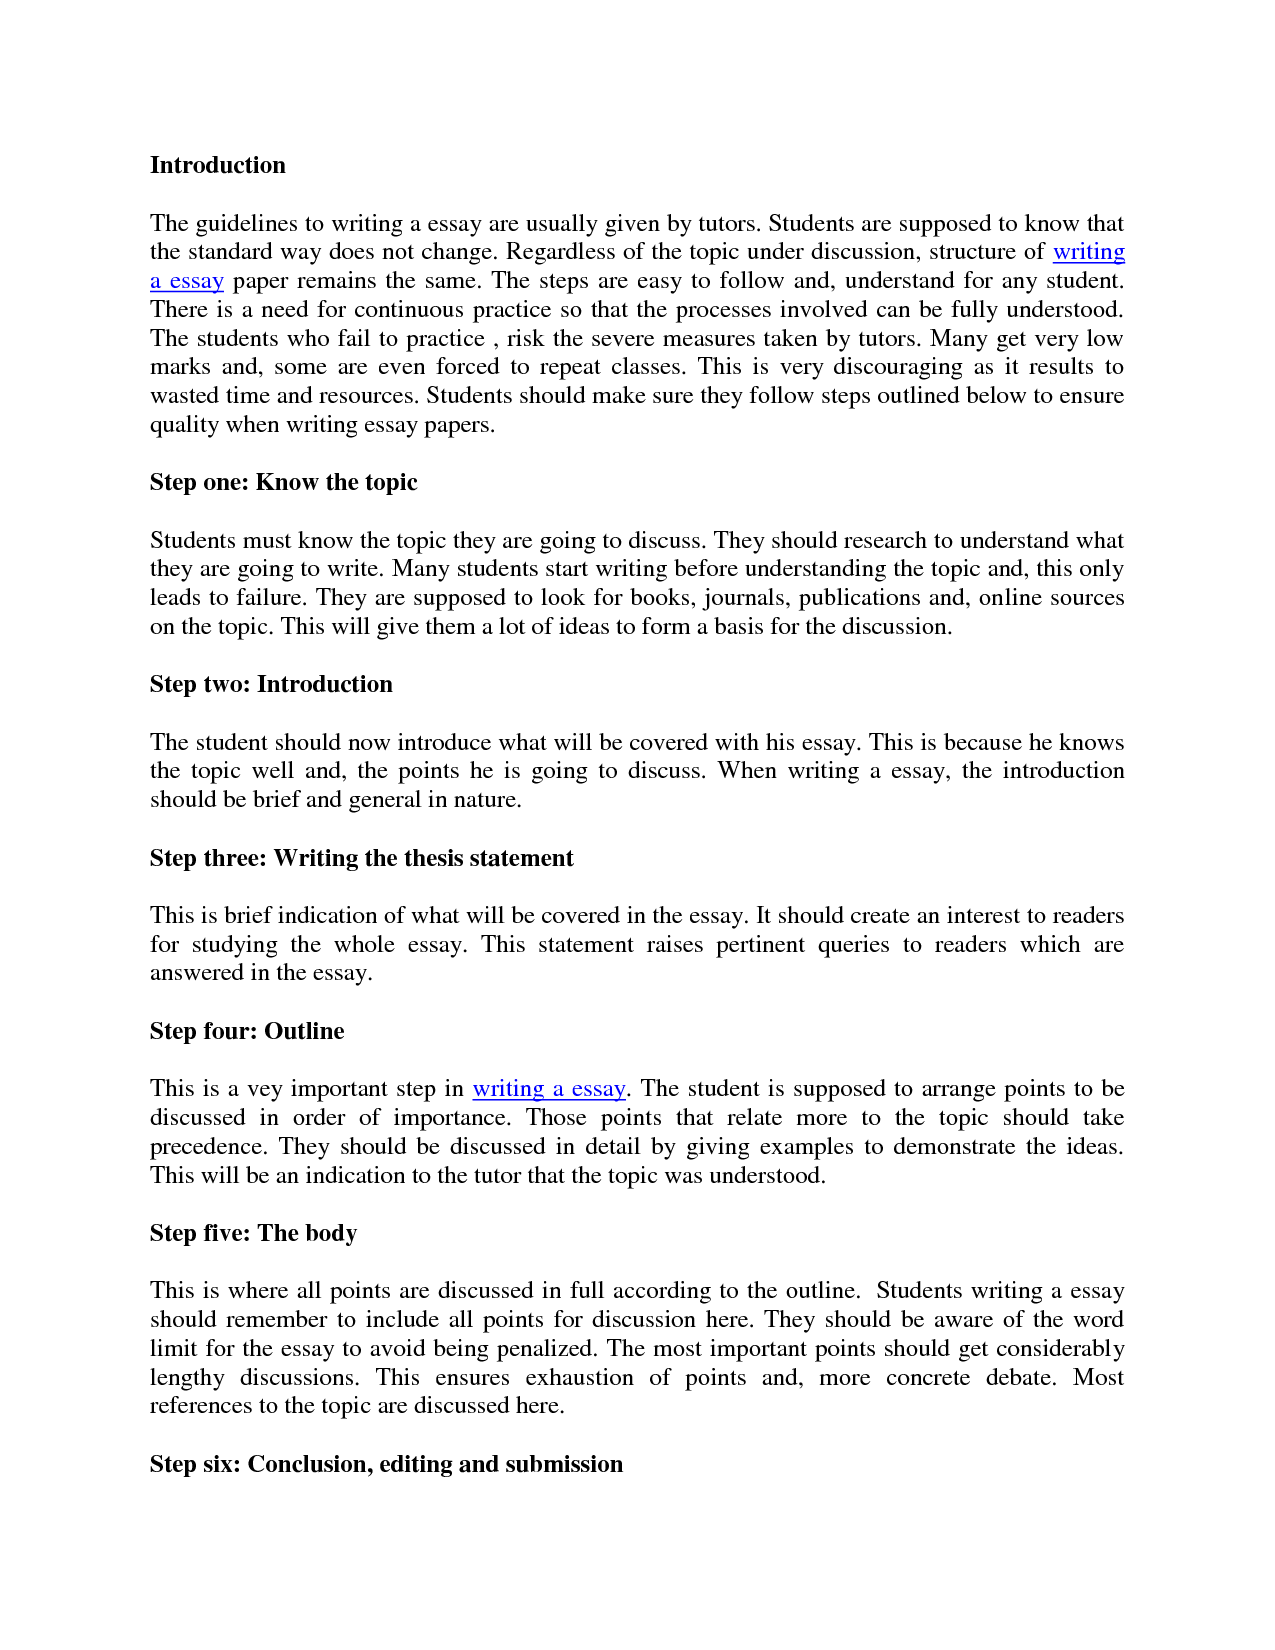 010 Essay Example Good Intros For Essays How To Write An Obfuscata L Unusual Introductions Research Papers Examples Pdf Expository Full